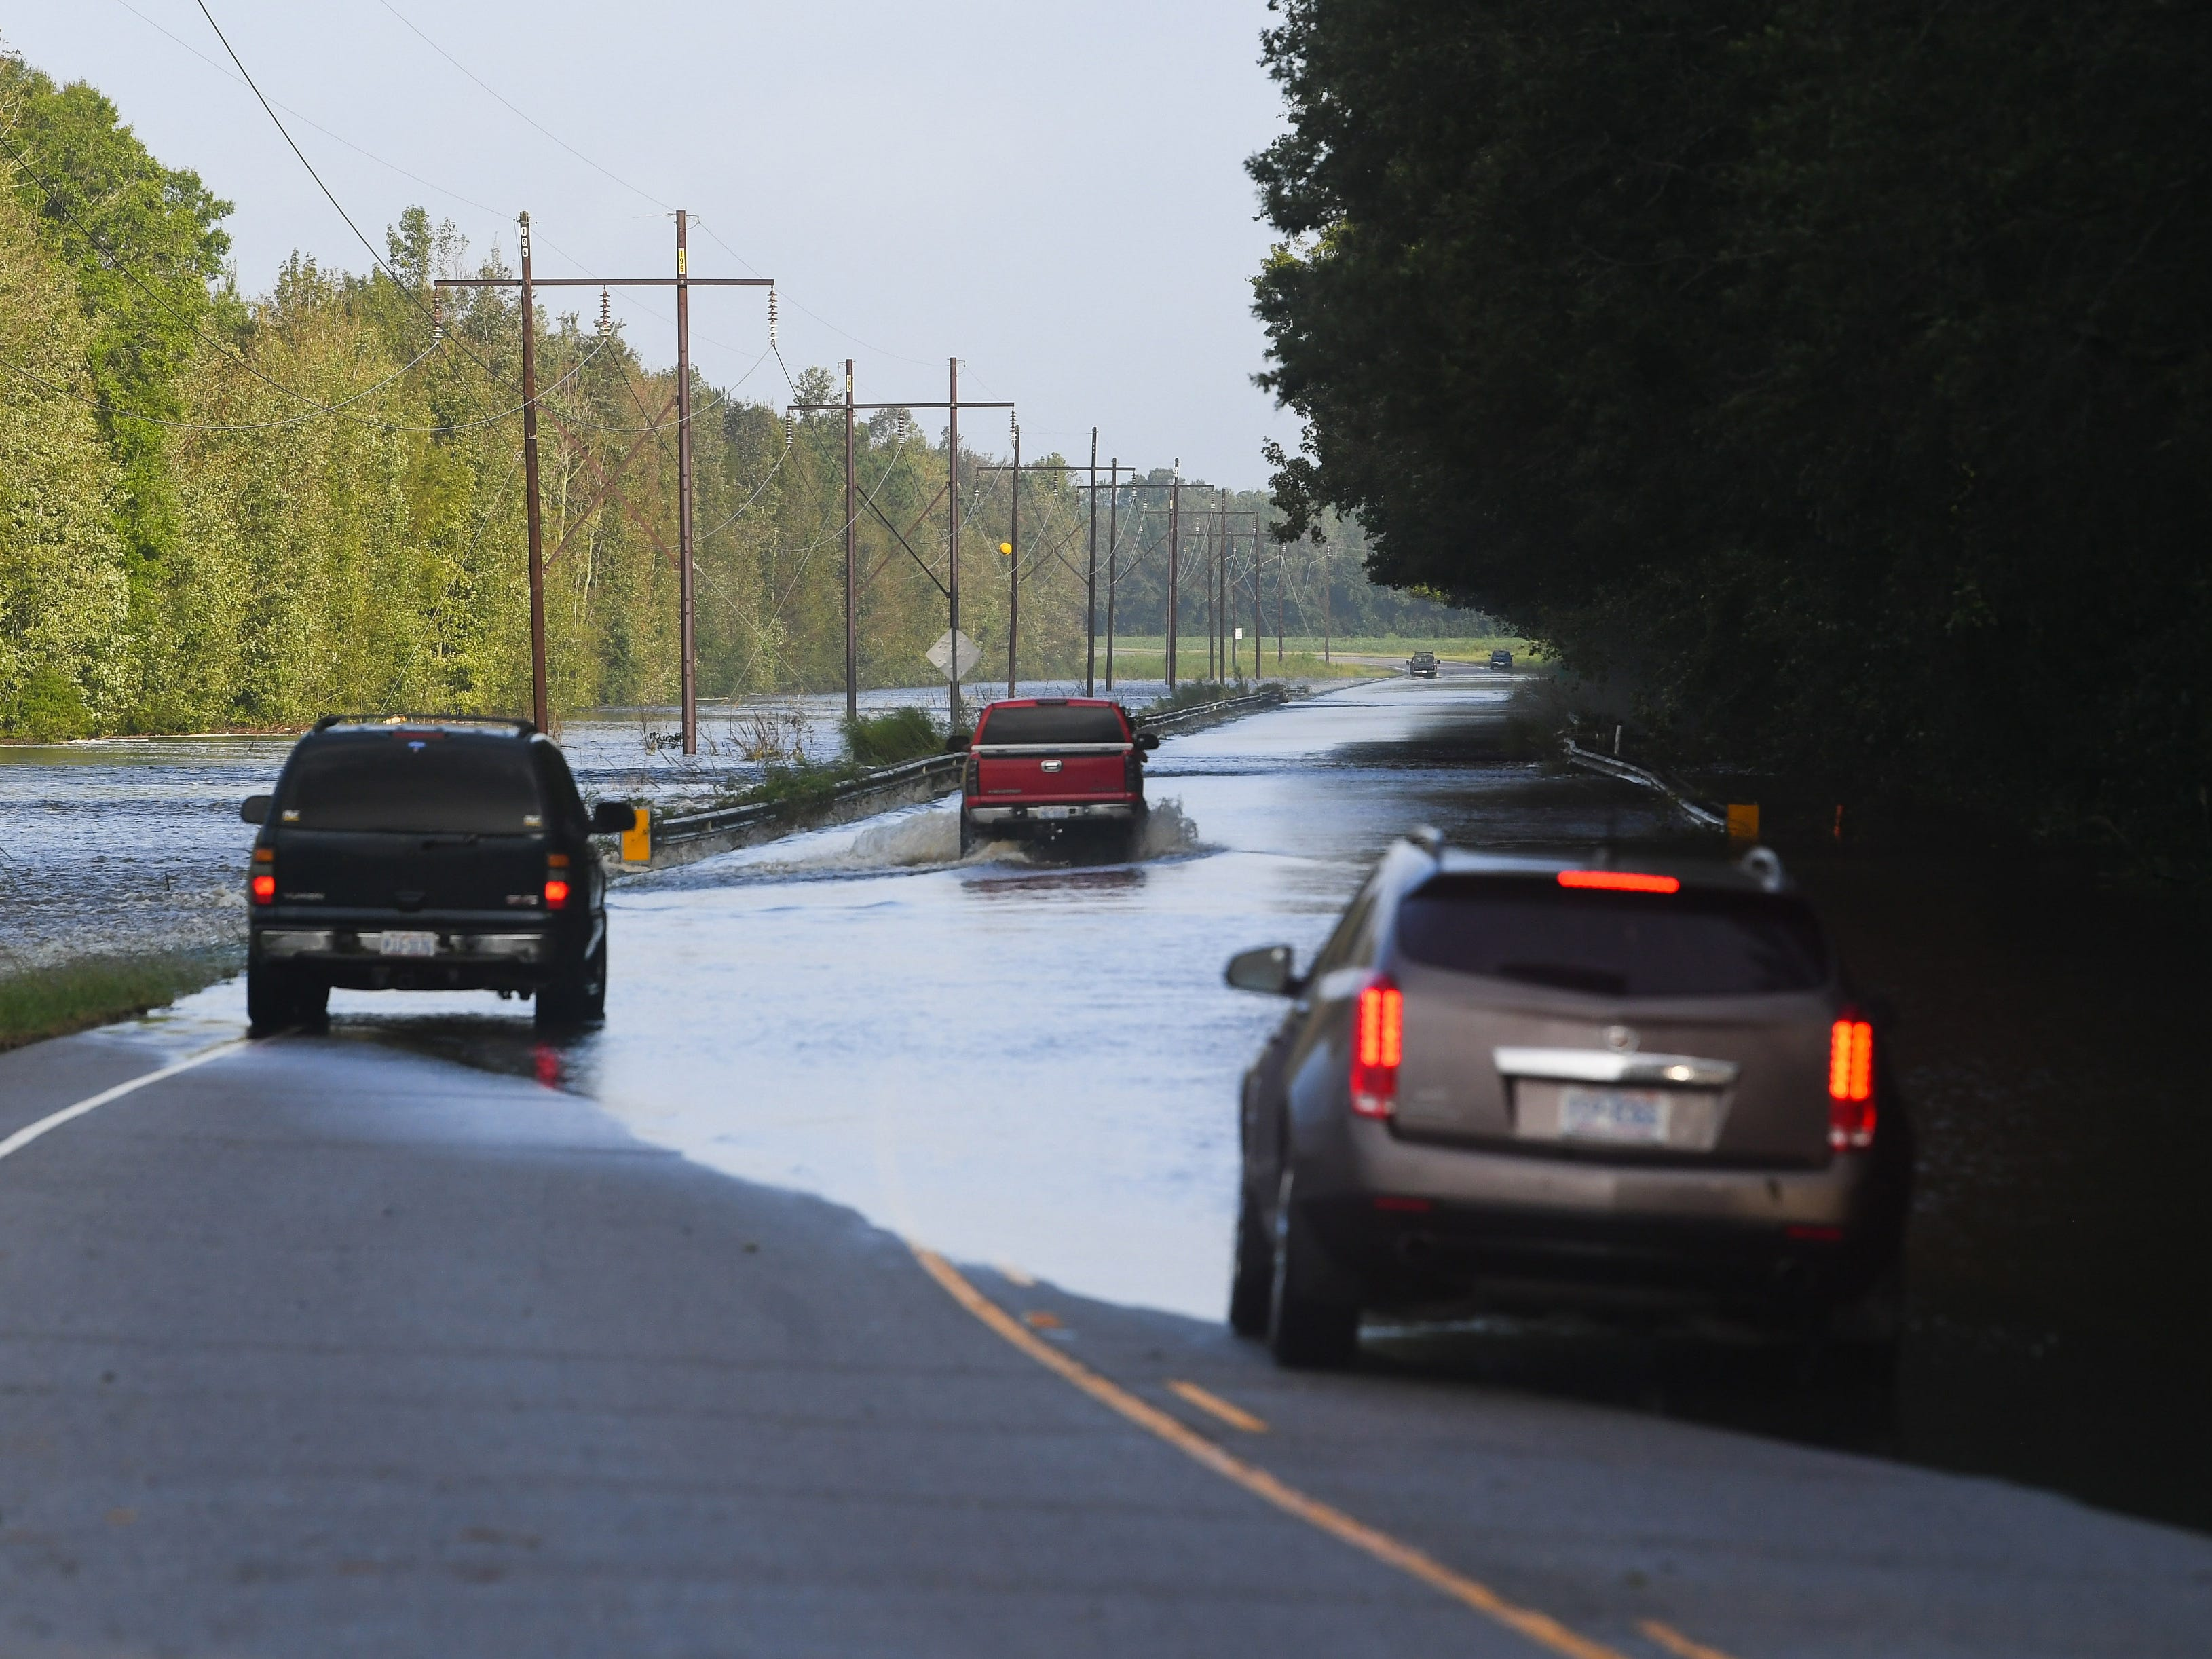 North Carolina officials warn about using GPS apps like Waze after Florence